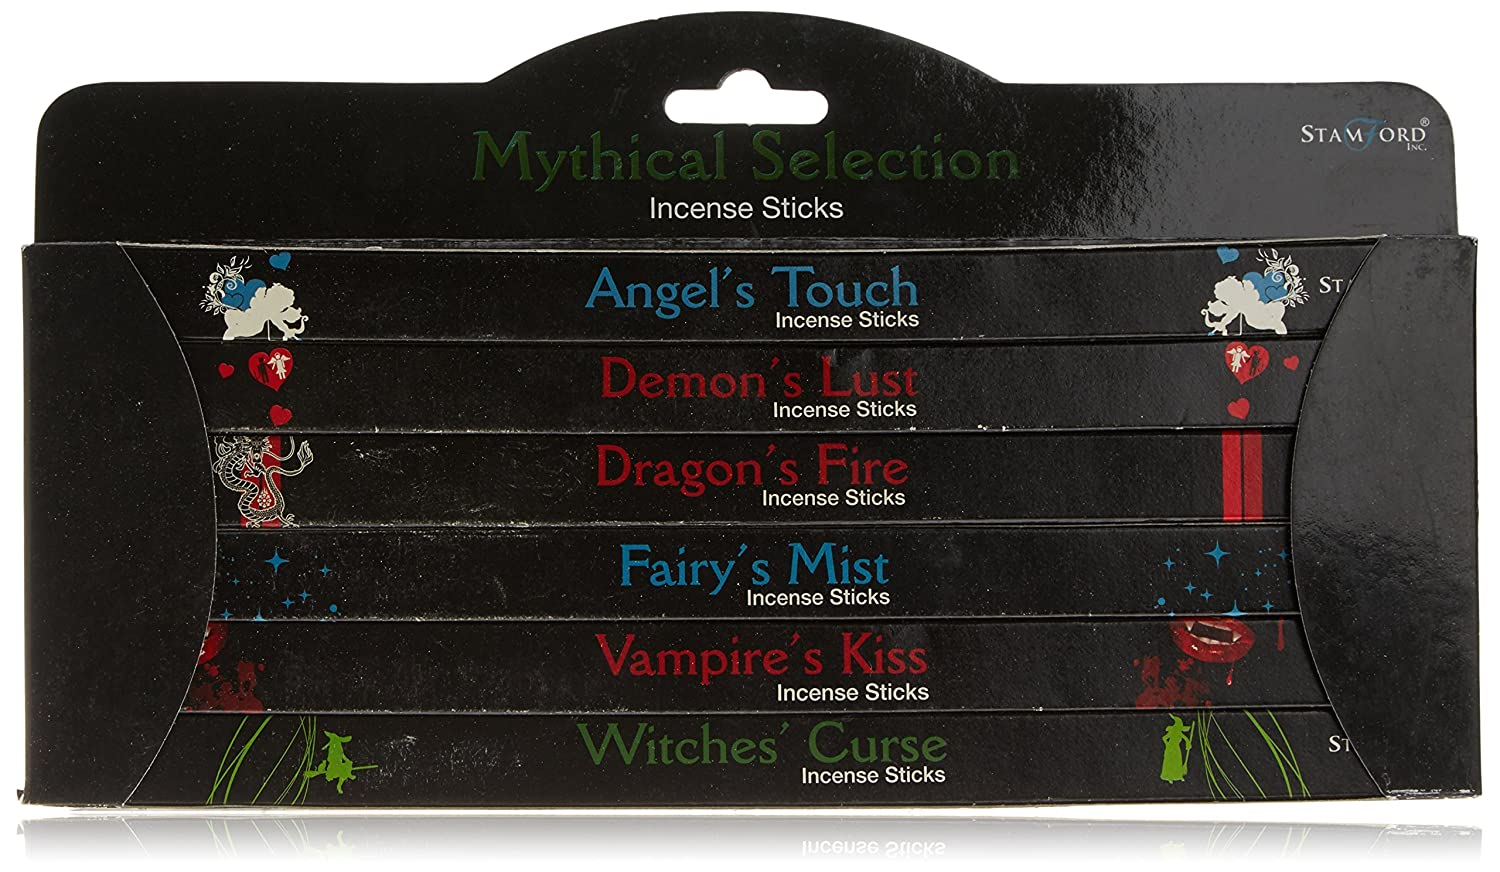 Stamford Mythical Incense Gift Pack Aargee R-37149